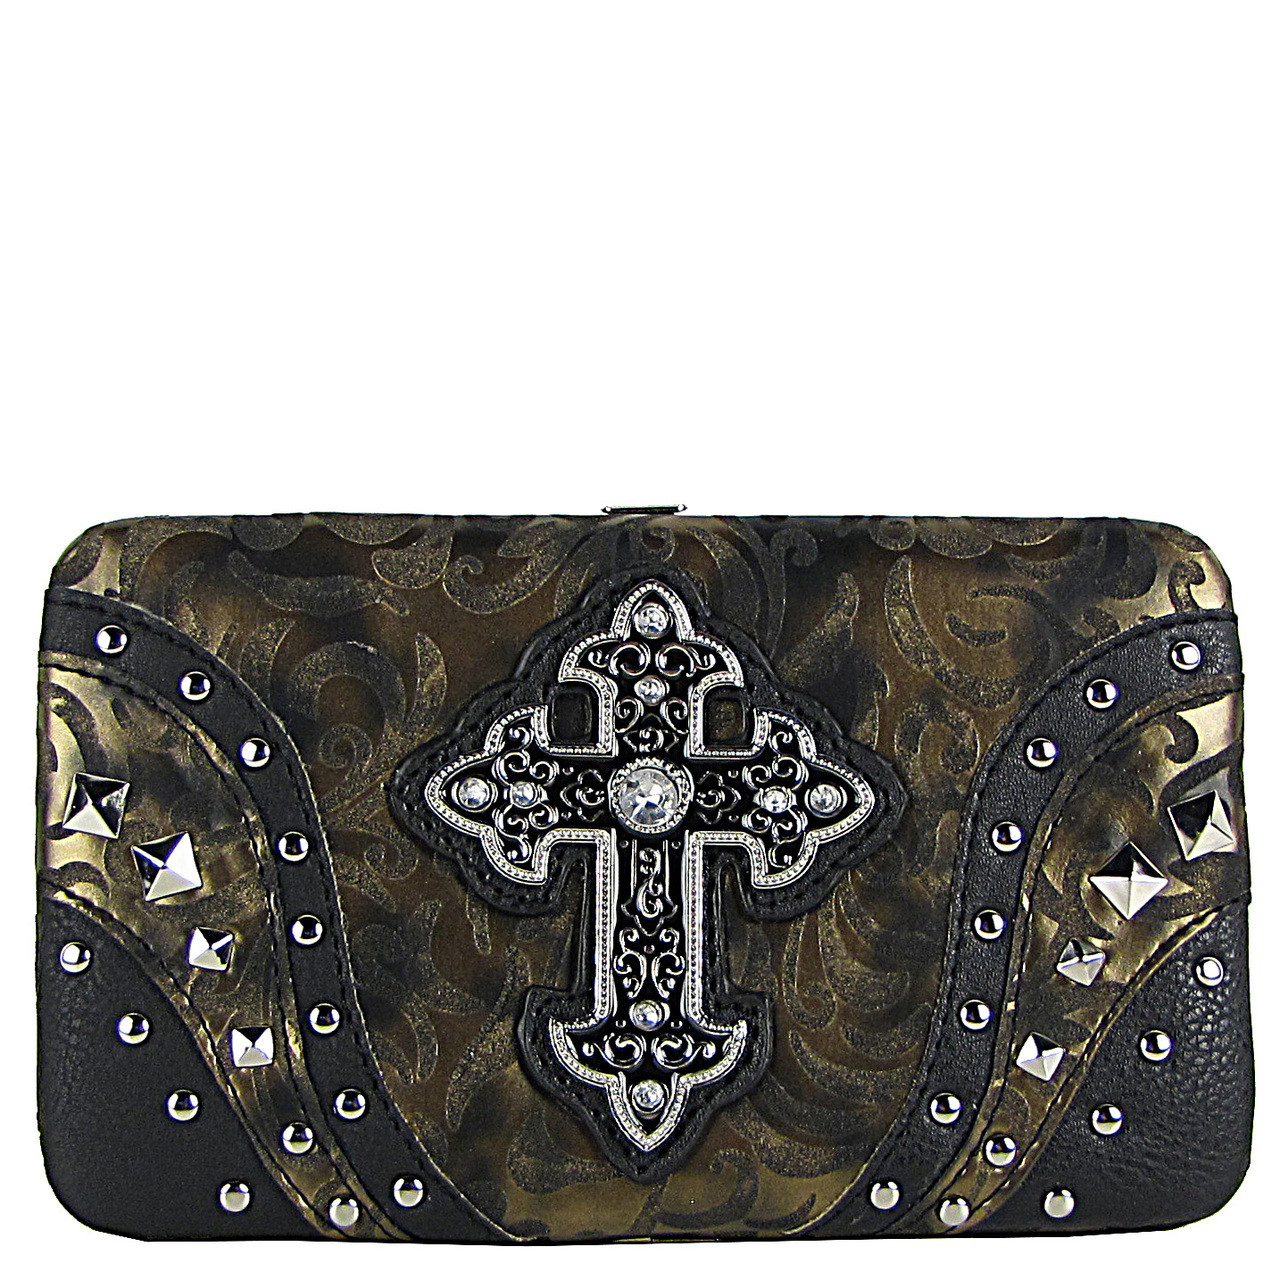 BLACK STUDDED RHINESTONE TOOLED CROSS LOOK FLAT THICK WALLET FW2-04113BLK